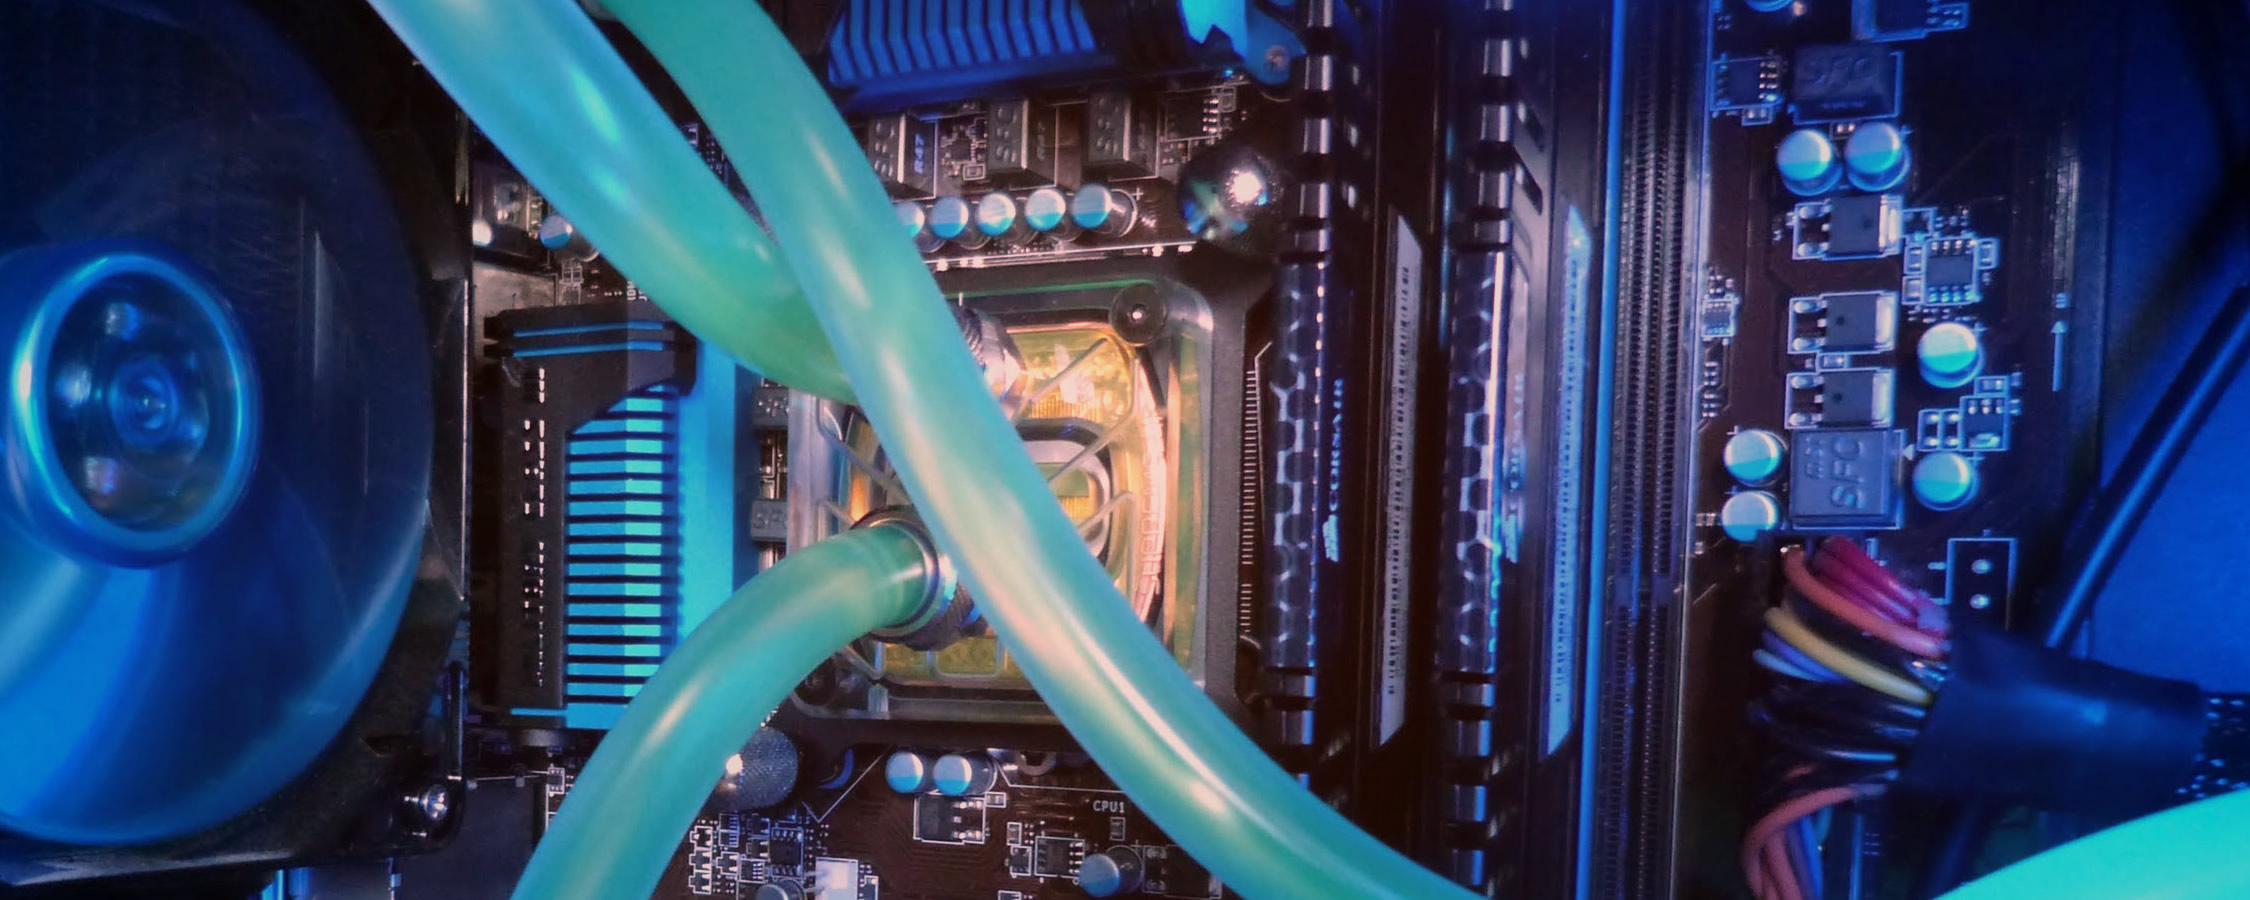 The Dos and Dont's of Water Cooling - TechSpot